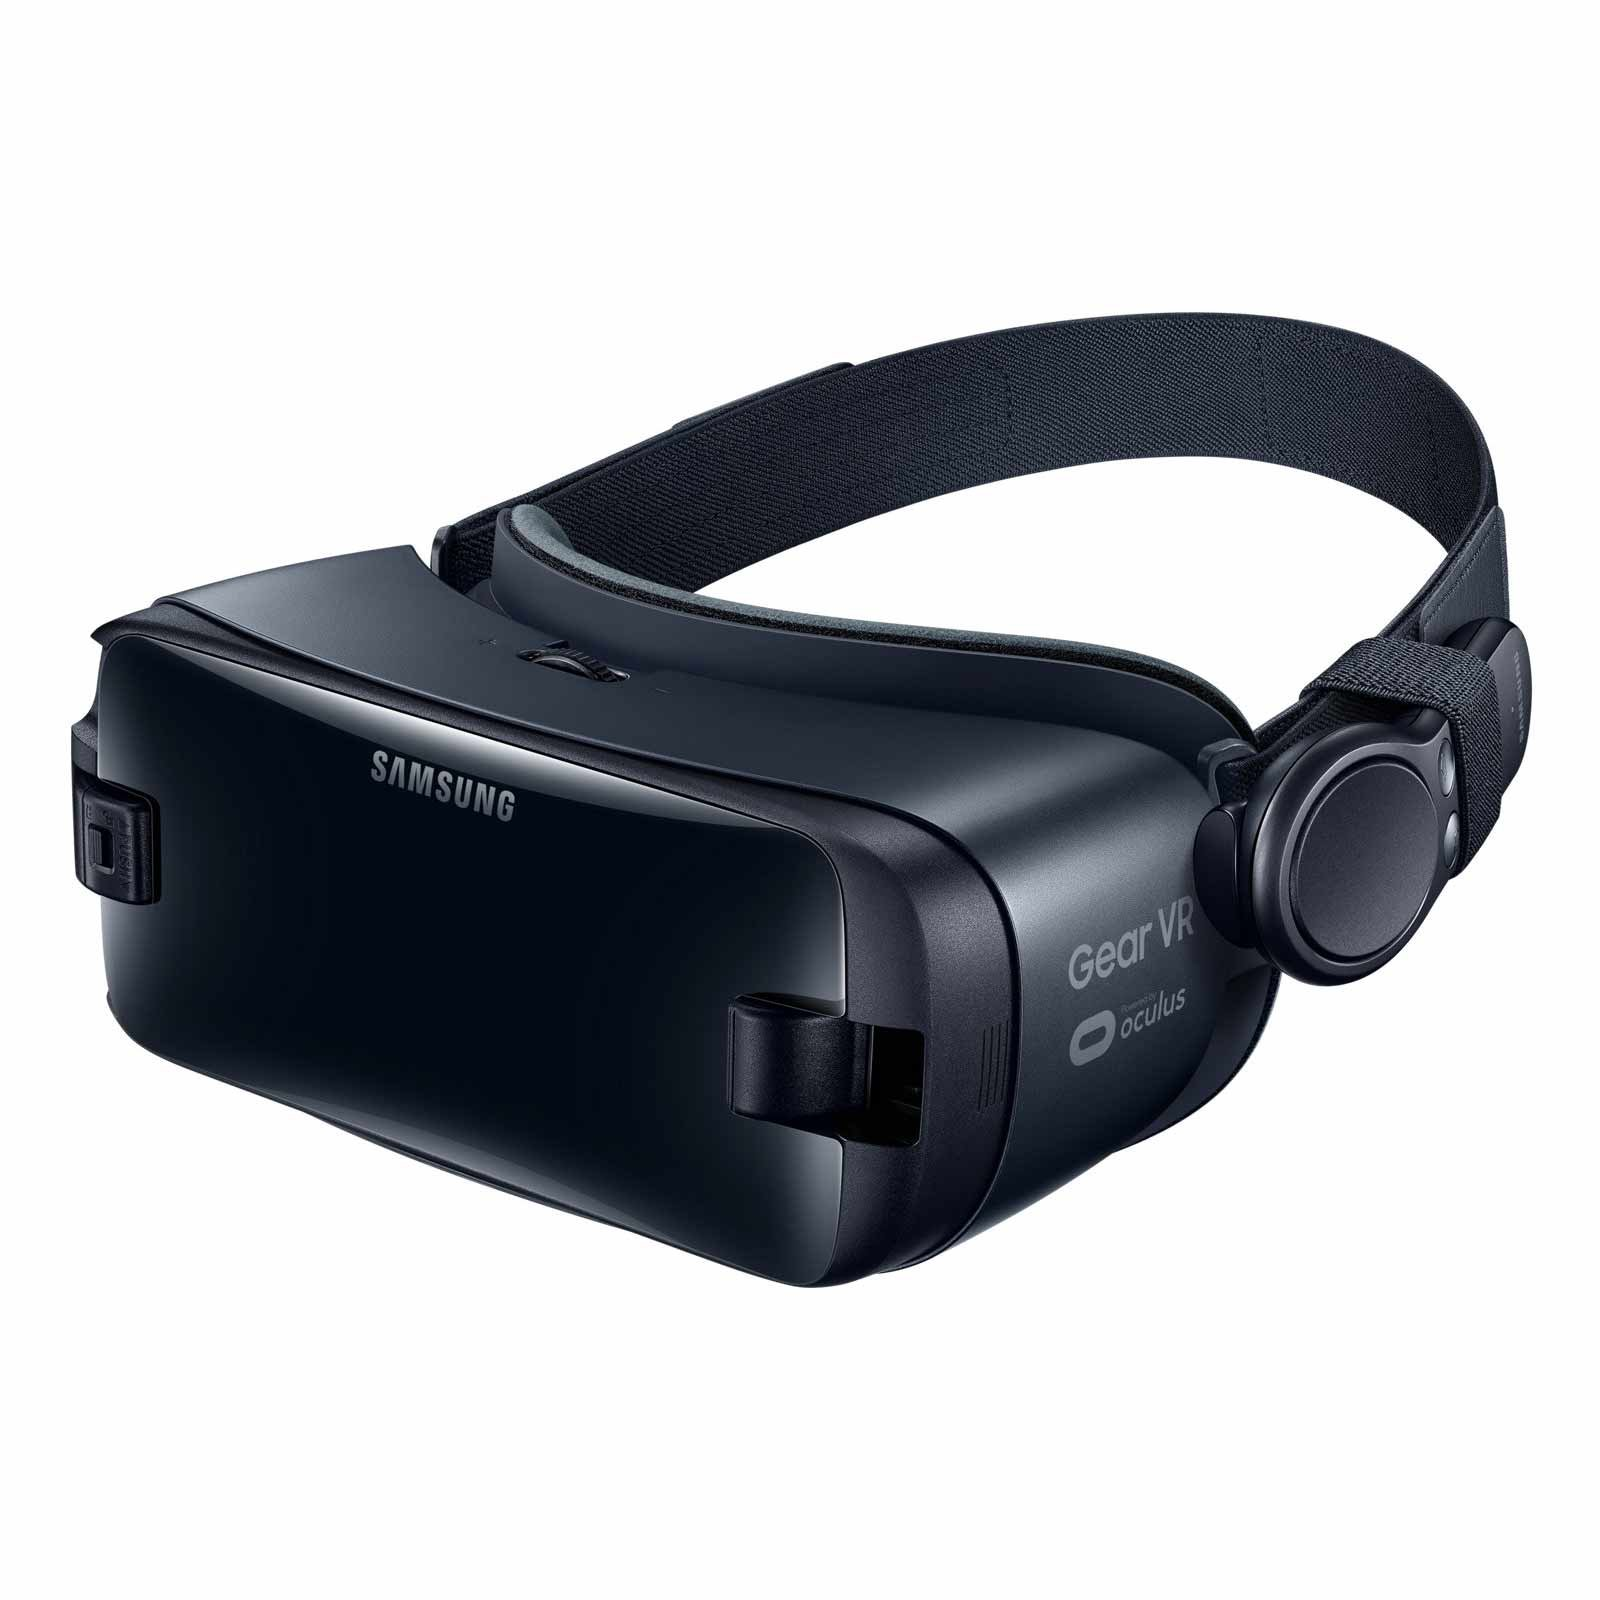 Samsung Gear VR (2017 Edition) with Controller Virtual Reality Headset SM-R325 for Galaxy S8, S8+, S7, S7 edge, Note5, Note 8, S6 edge+, S6, S6 edge (International Version, No Warranty) by Samsung (Image #4)